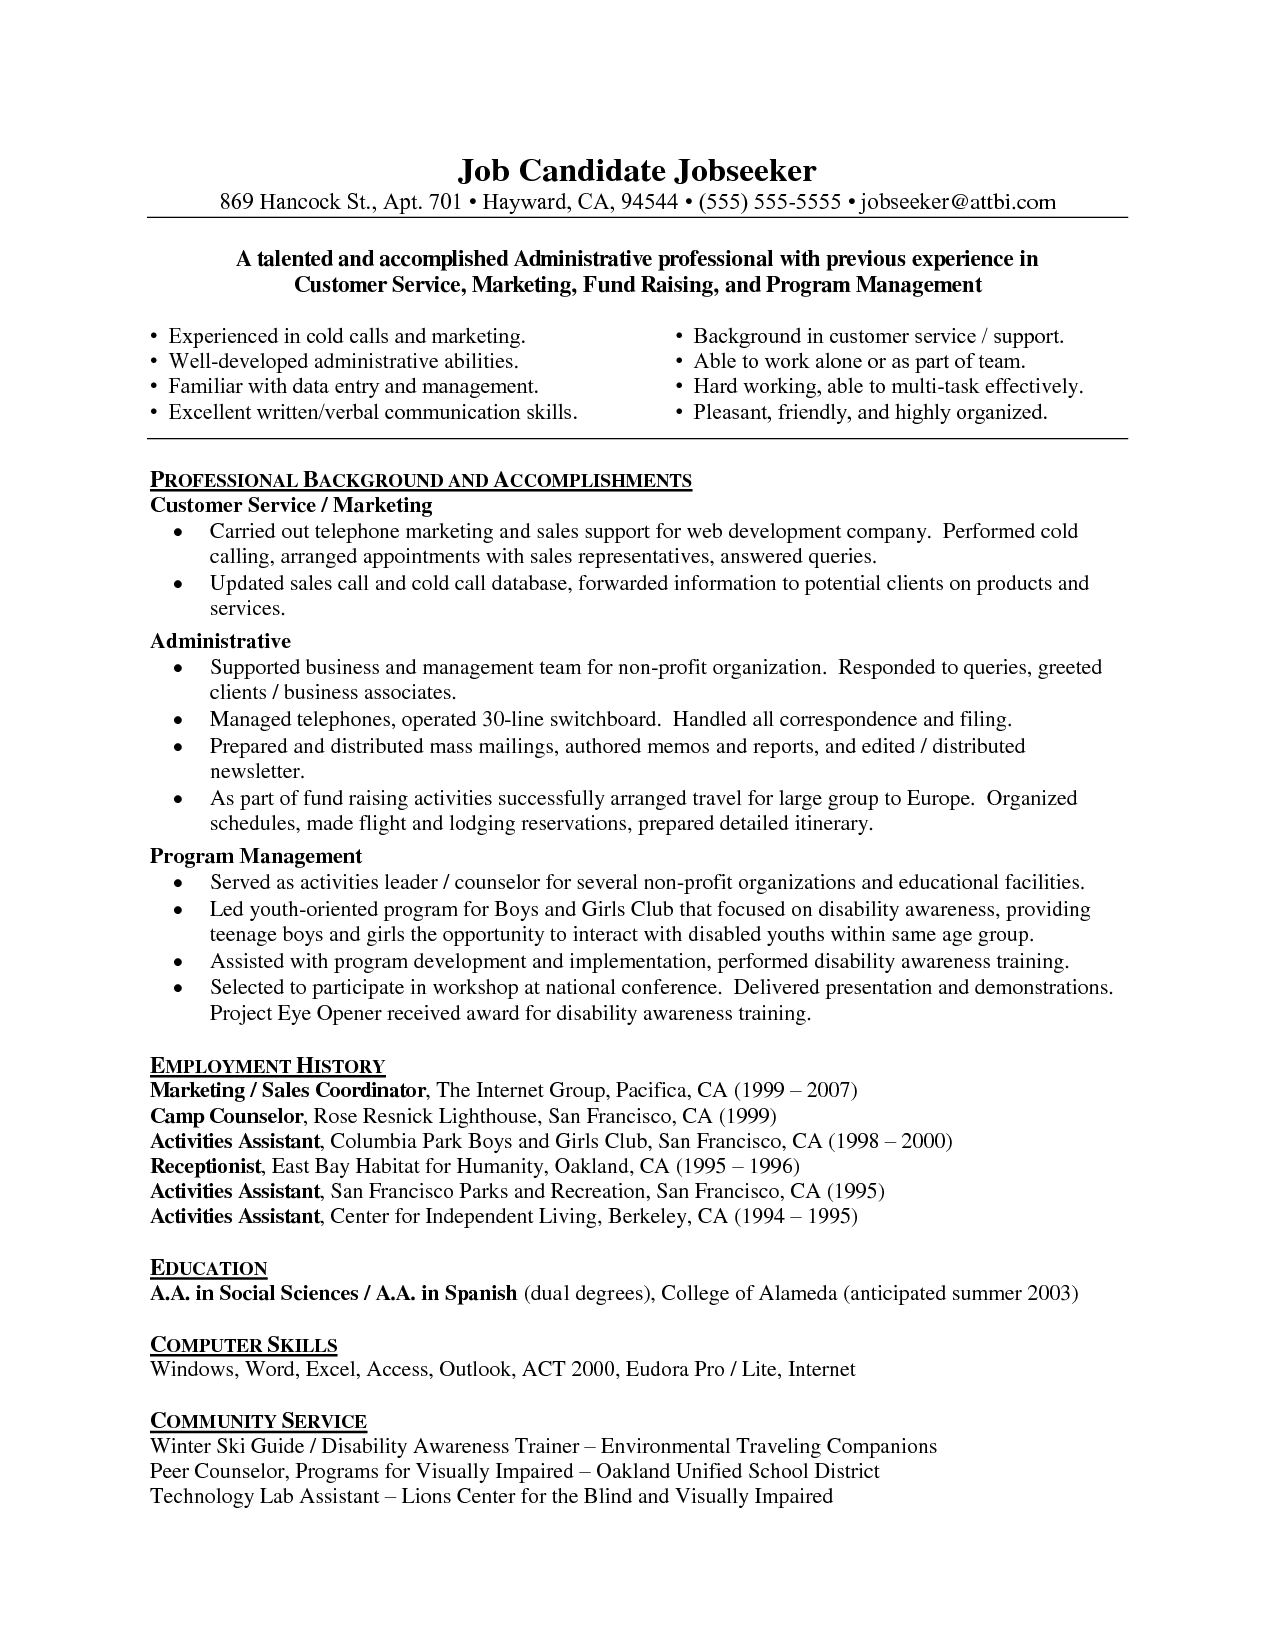 resume for a customer service job. customer service resume format  roiinvesting com . resume for a customer service job